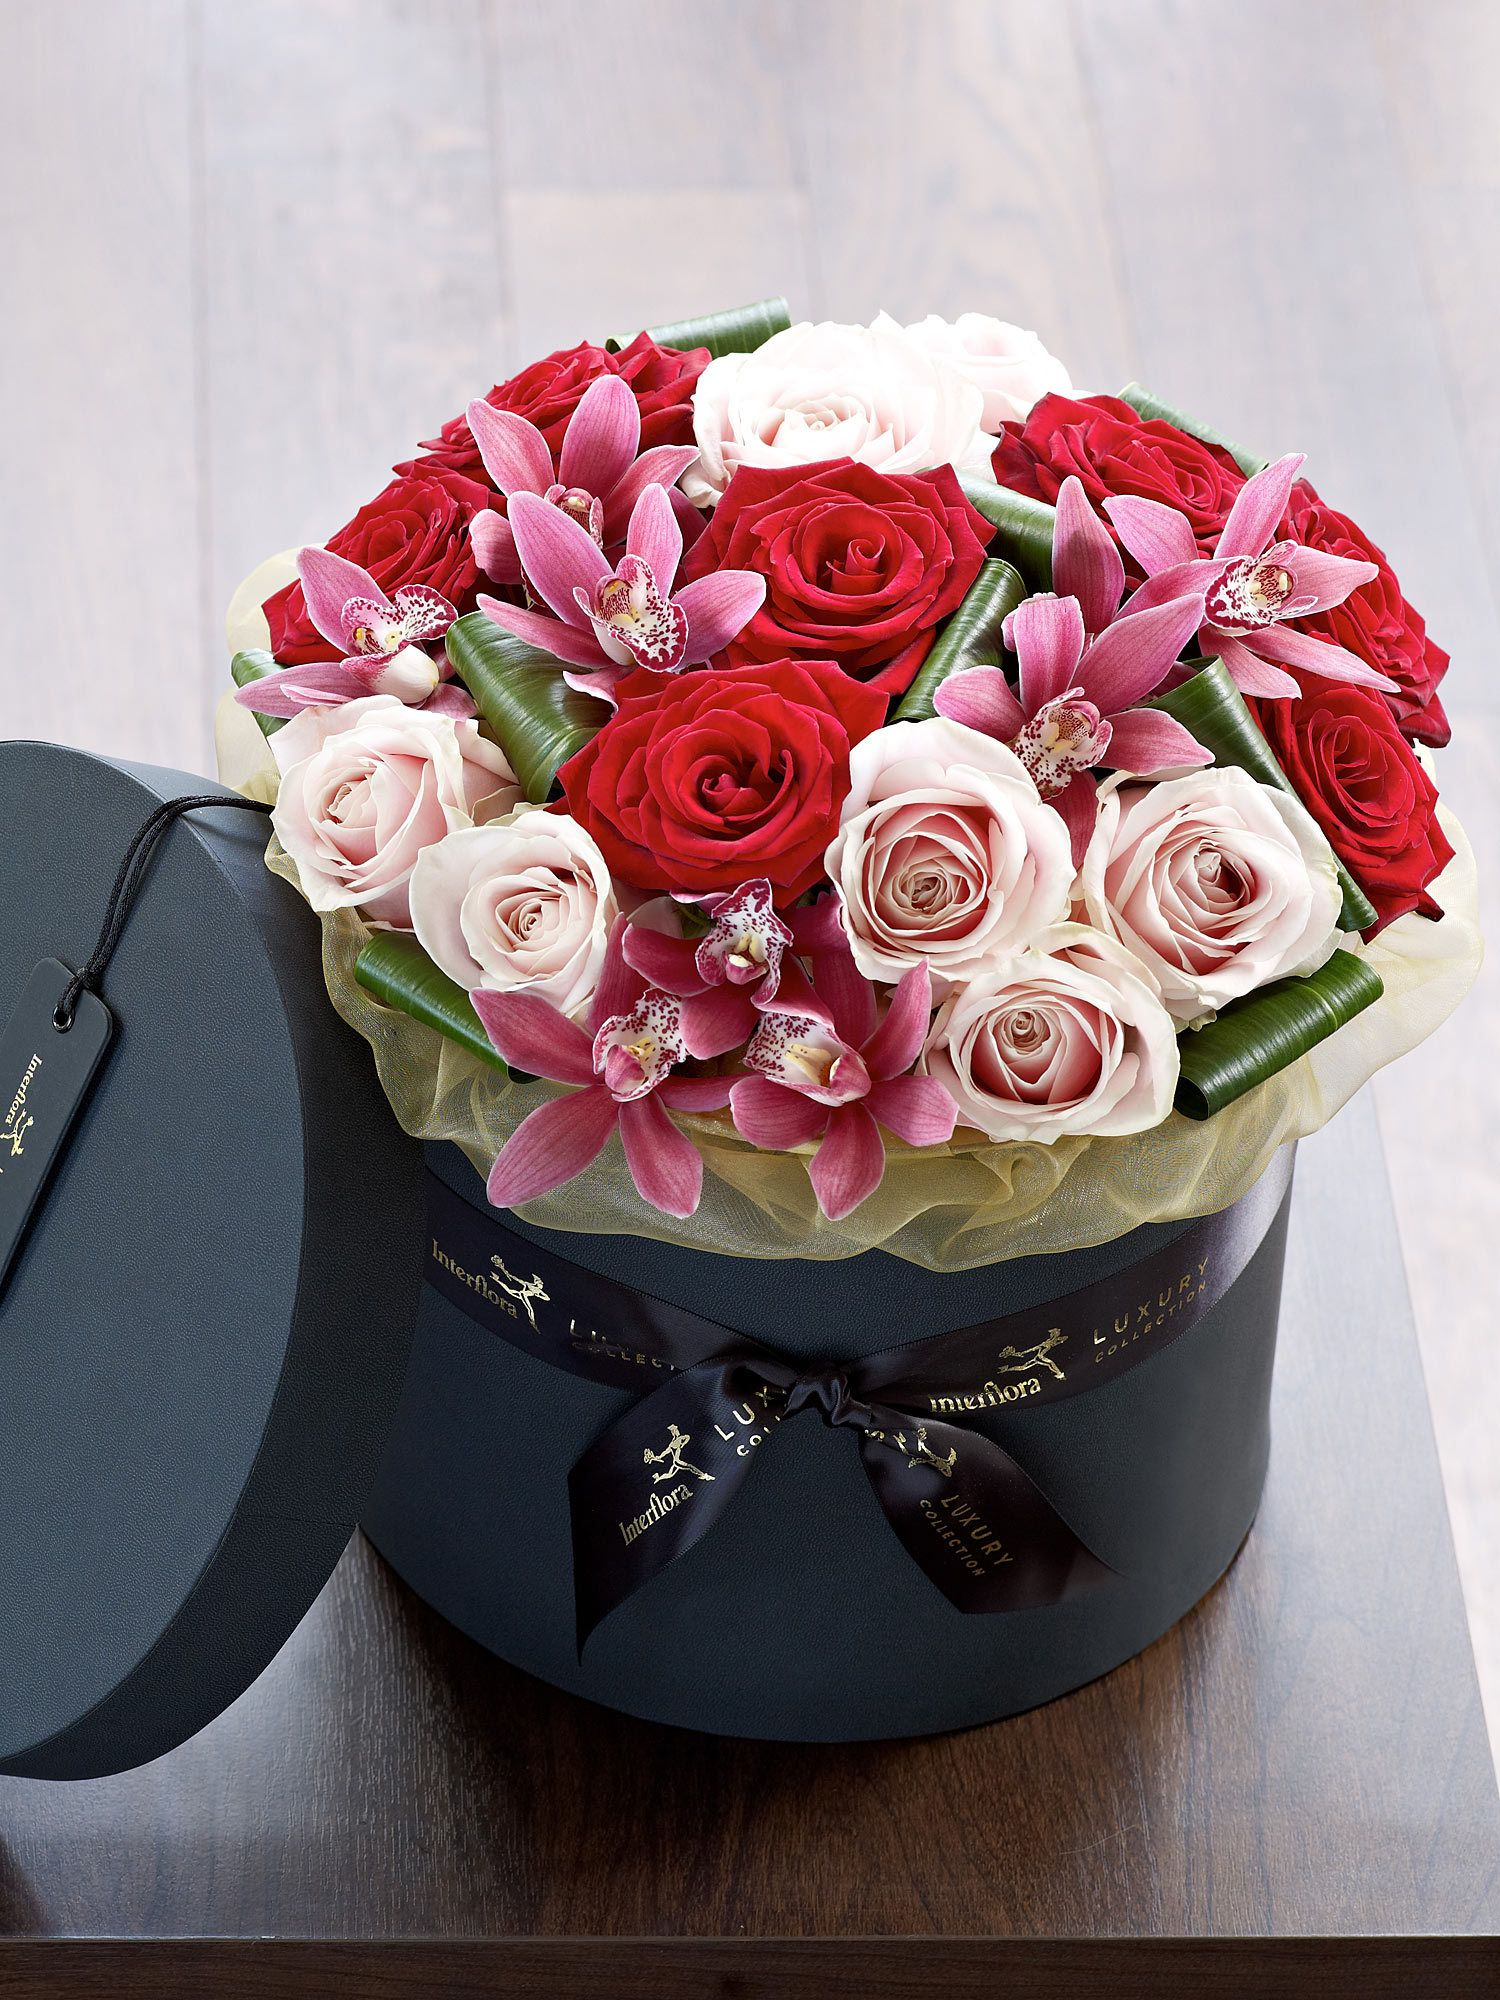 Red naomi roses and white avalanche roses in a luxurious